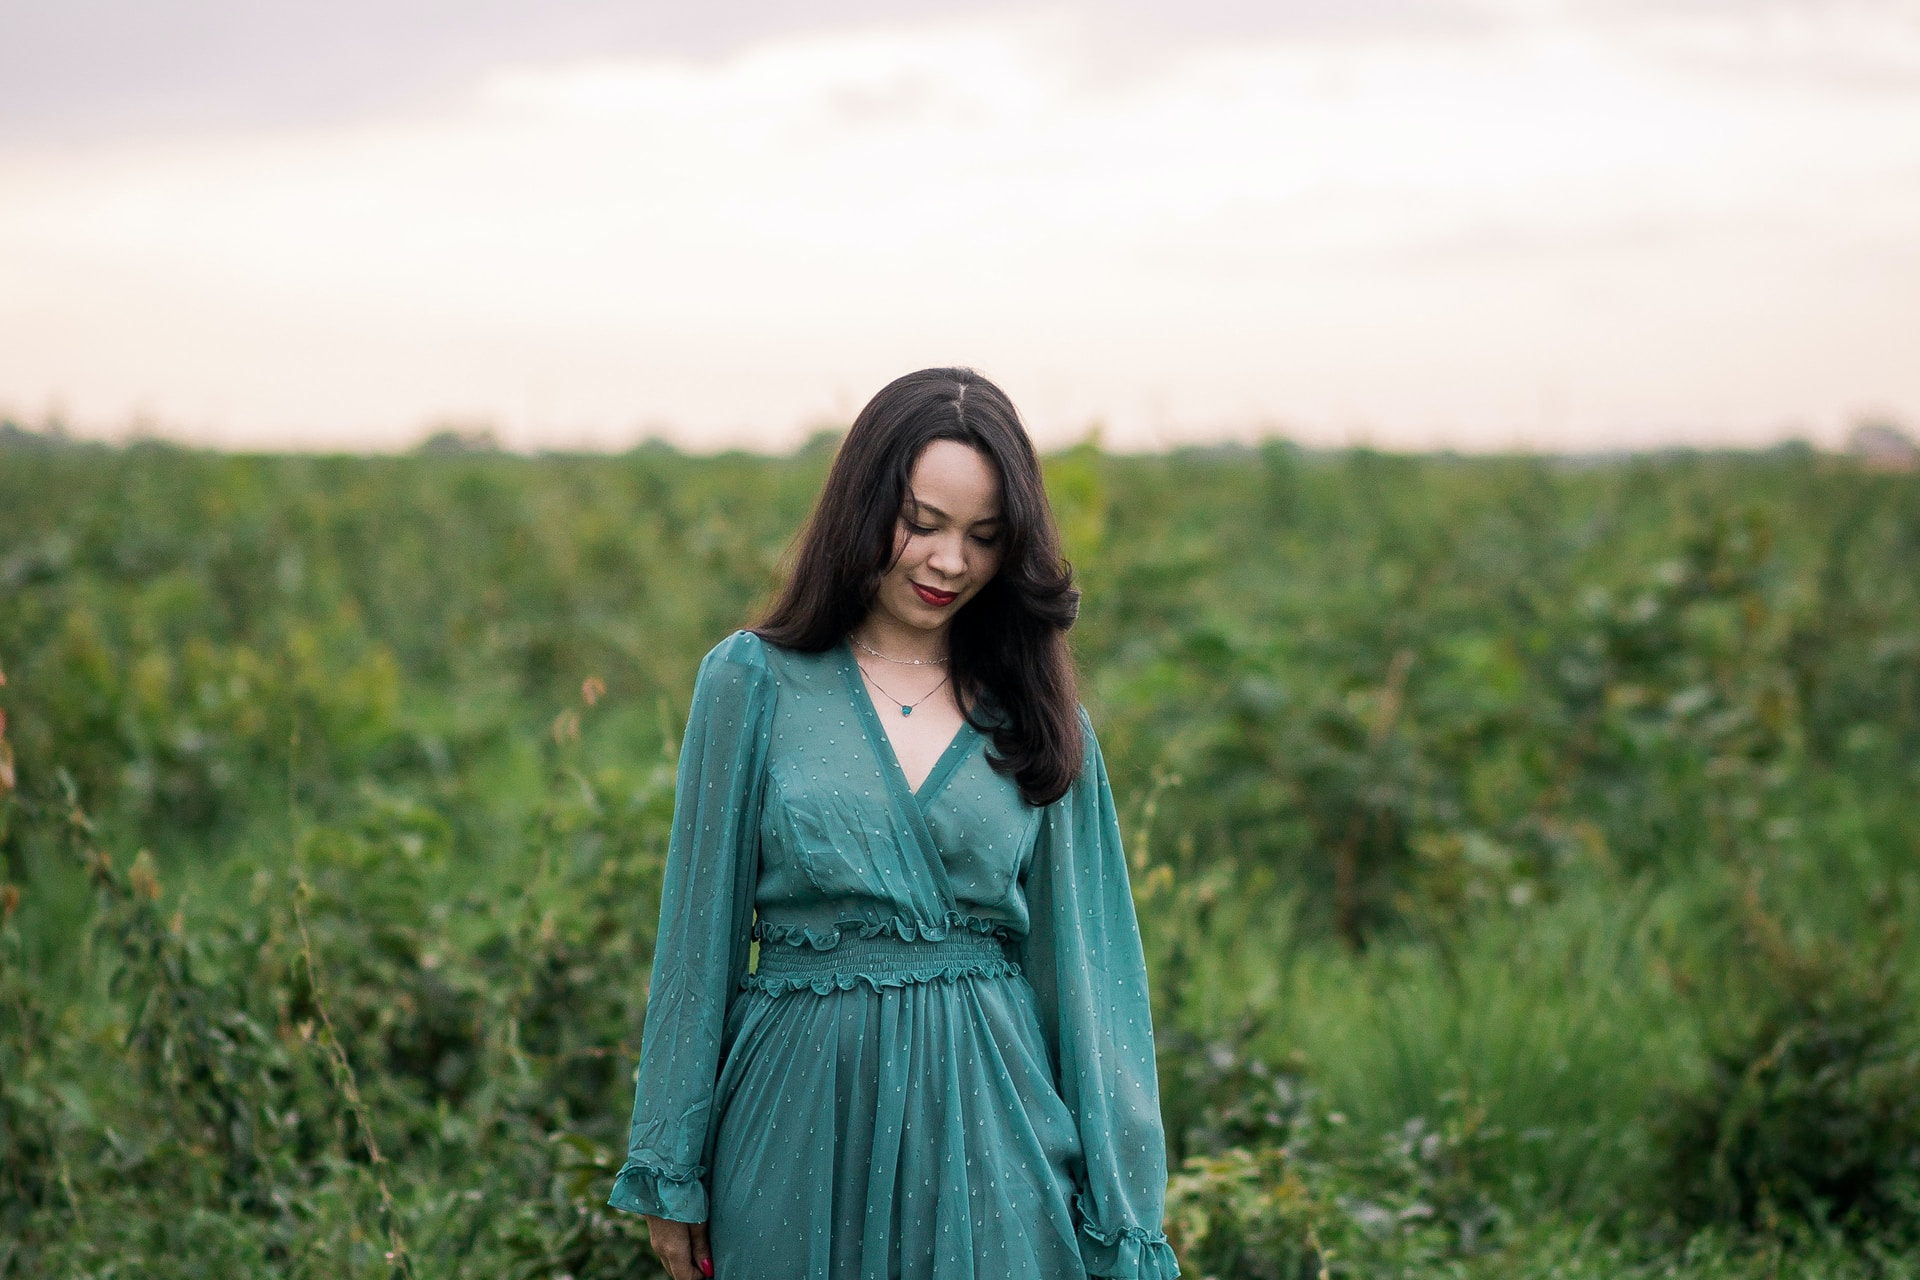 woman in green long sleeve dress standing on green grass field during daytime